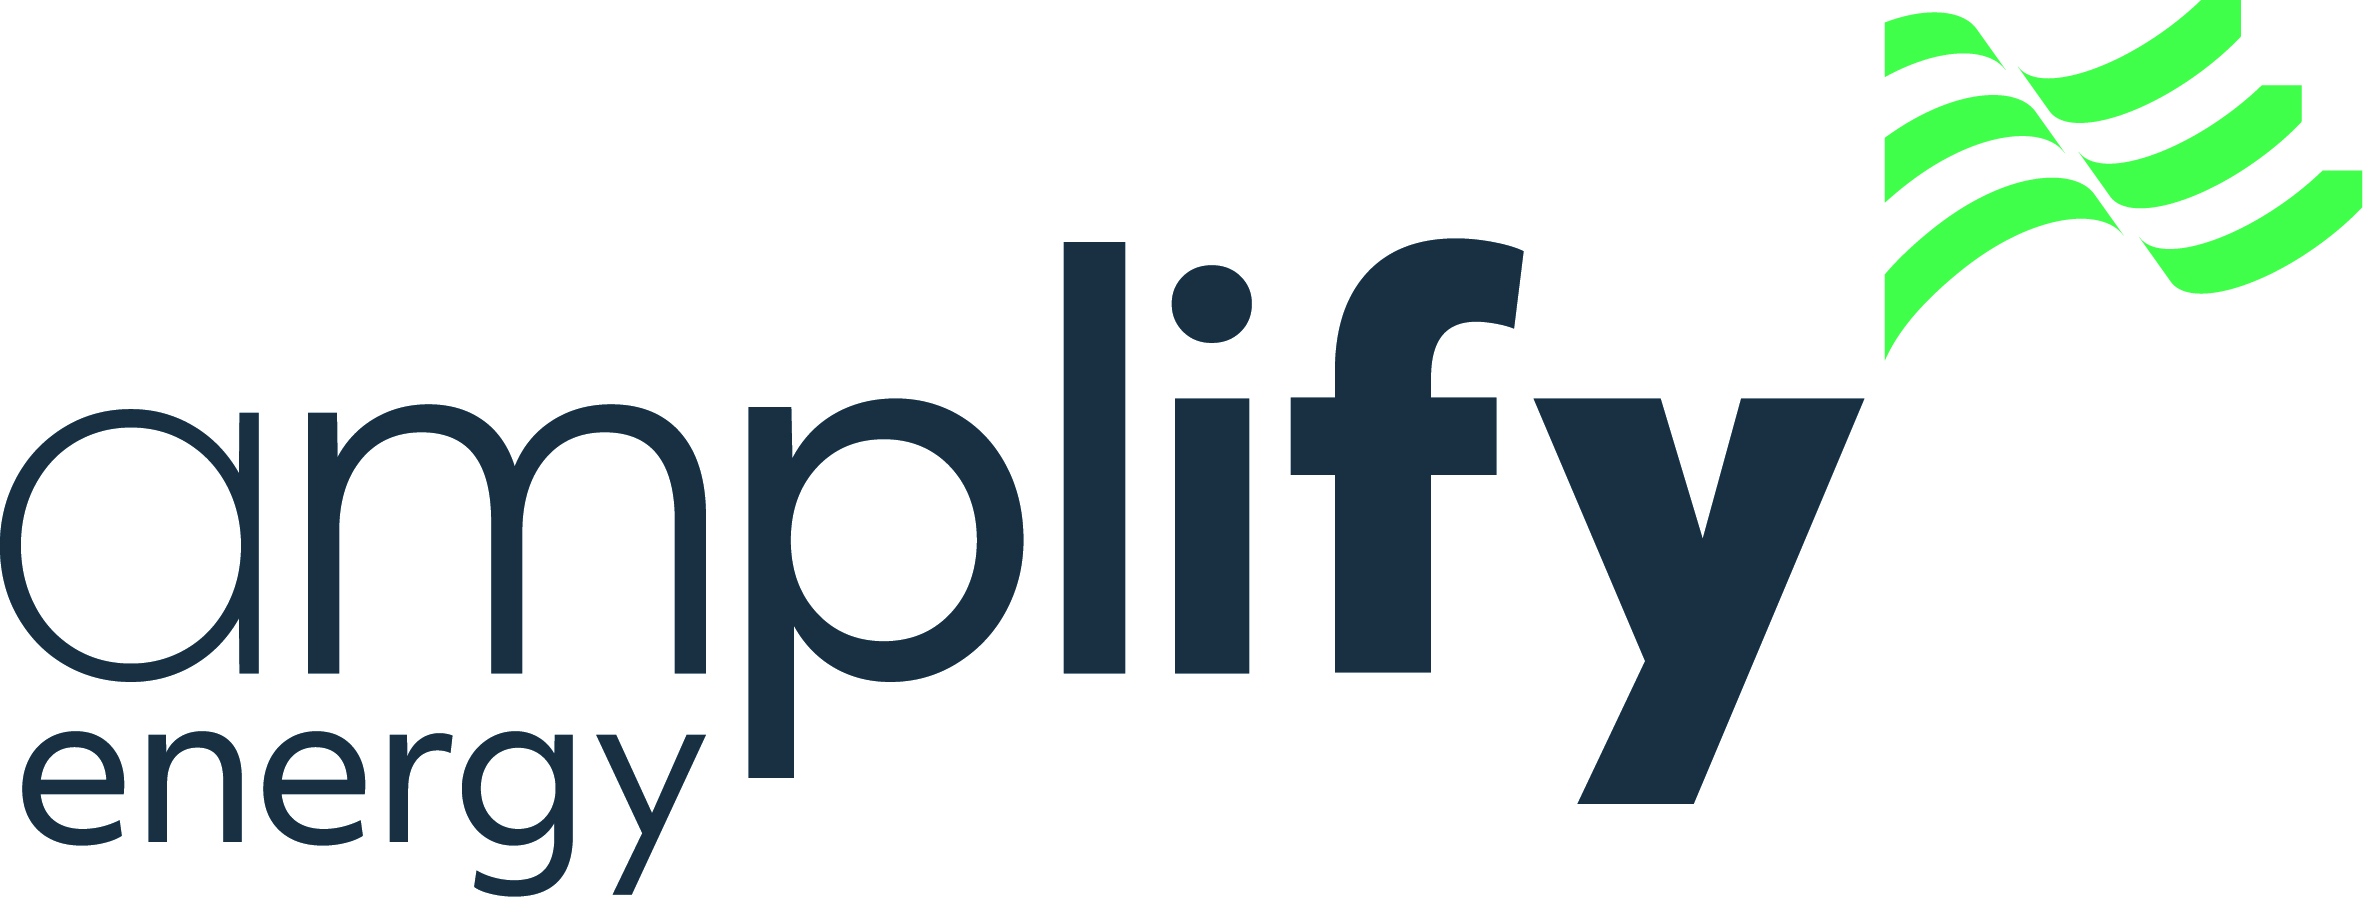 Amplify Energy Announces Fourth Quarter 2018 Earnings Conference Call